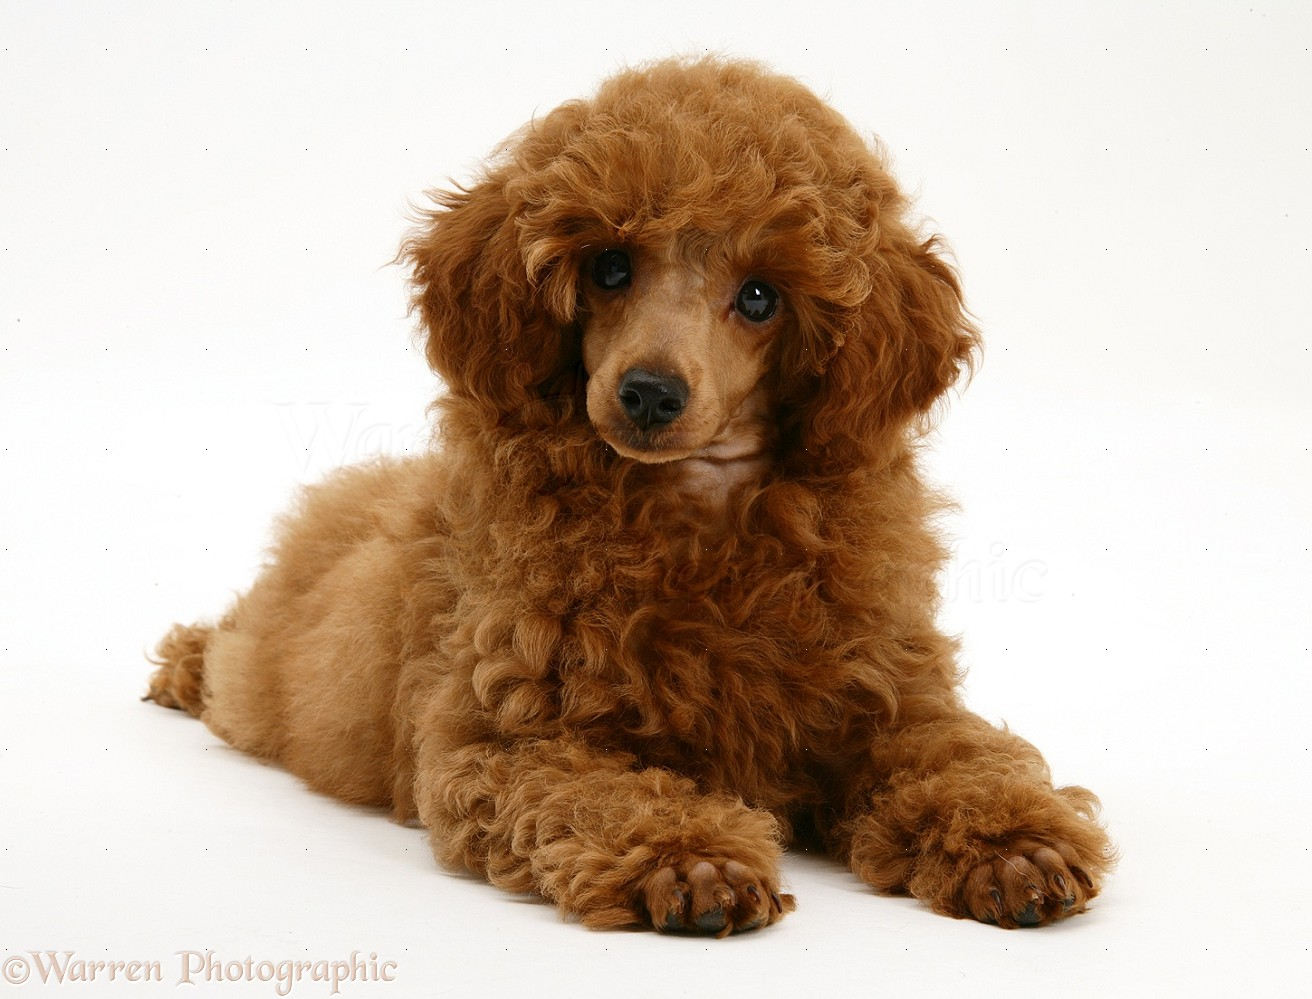 Dog Red Toy Poodle Pup Photo Wp17182